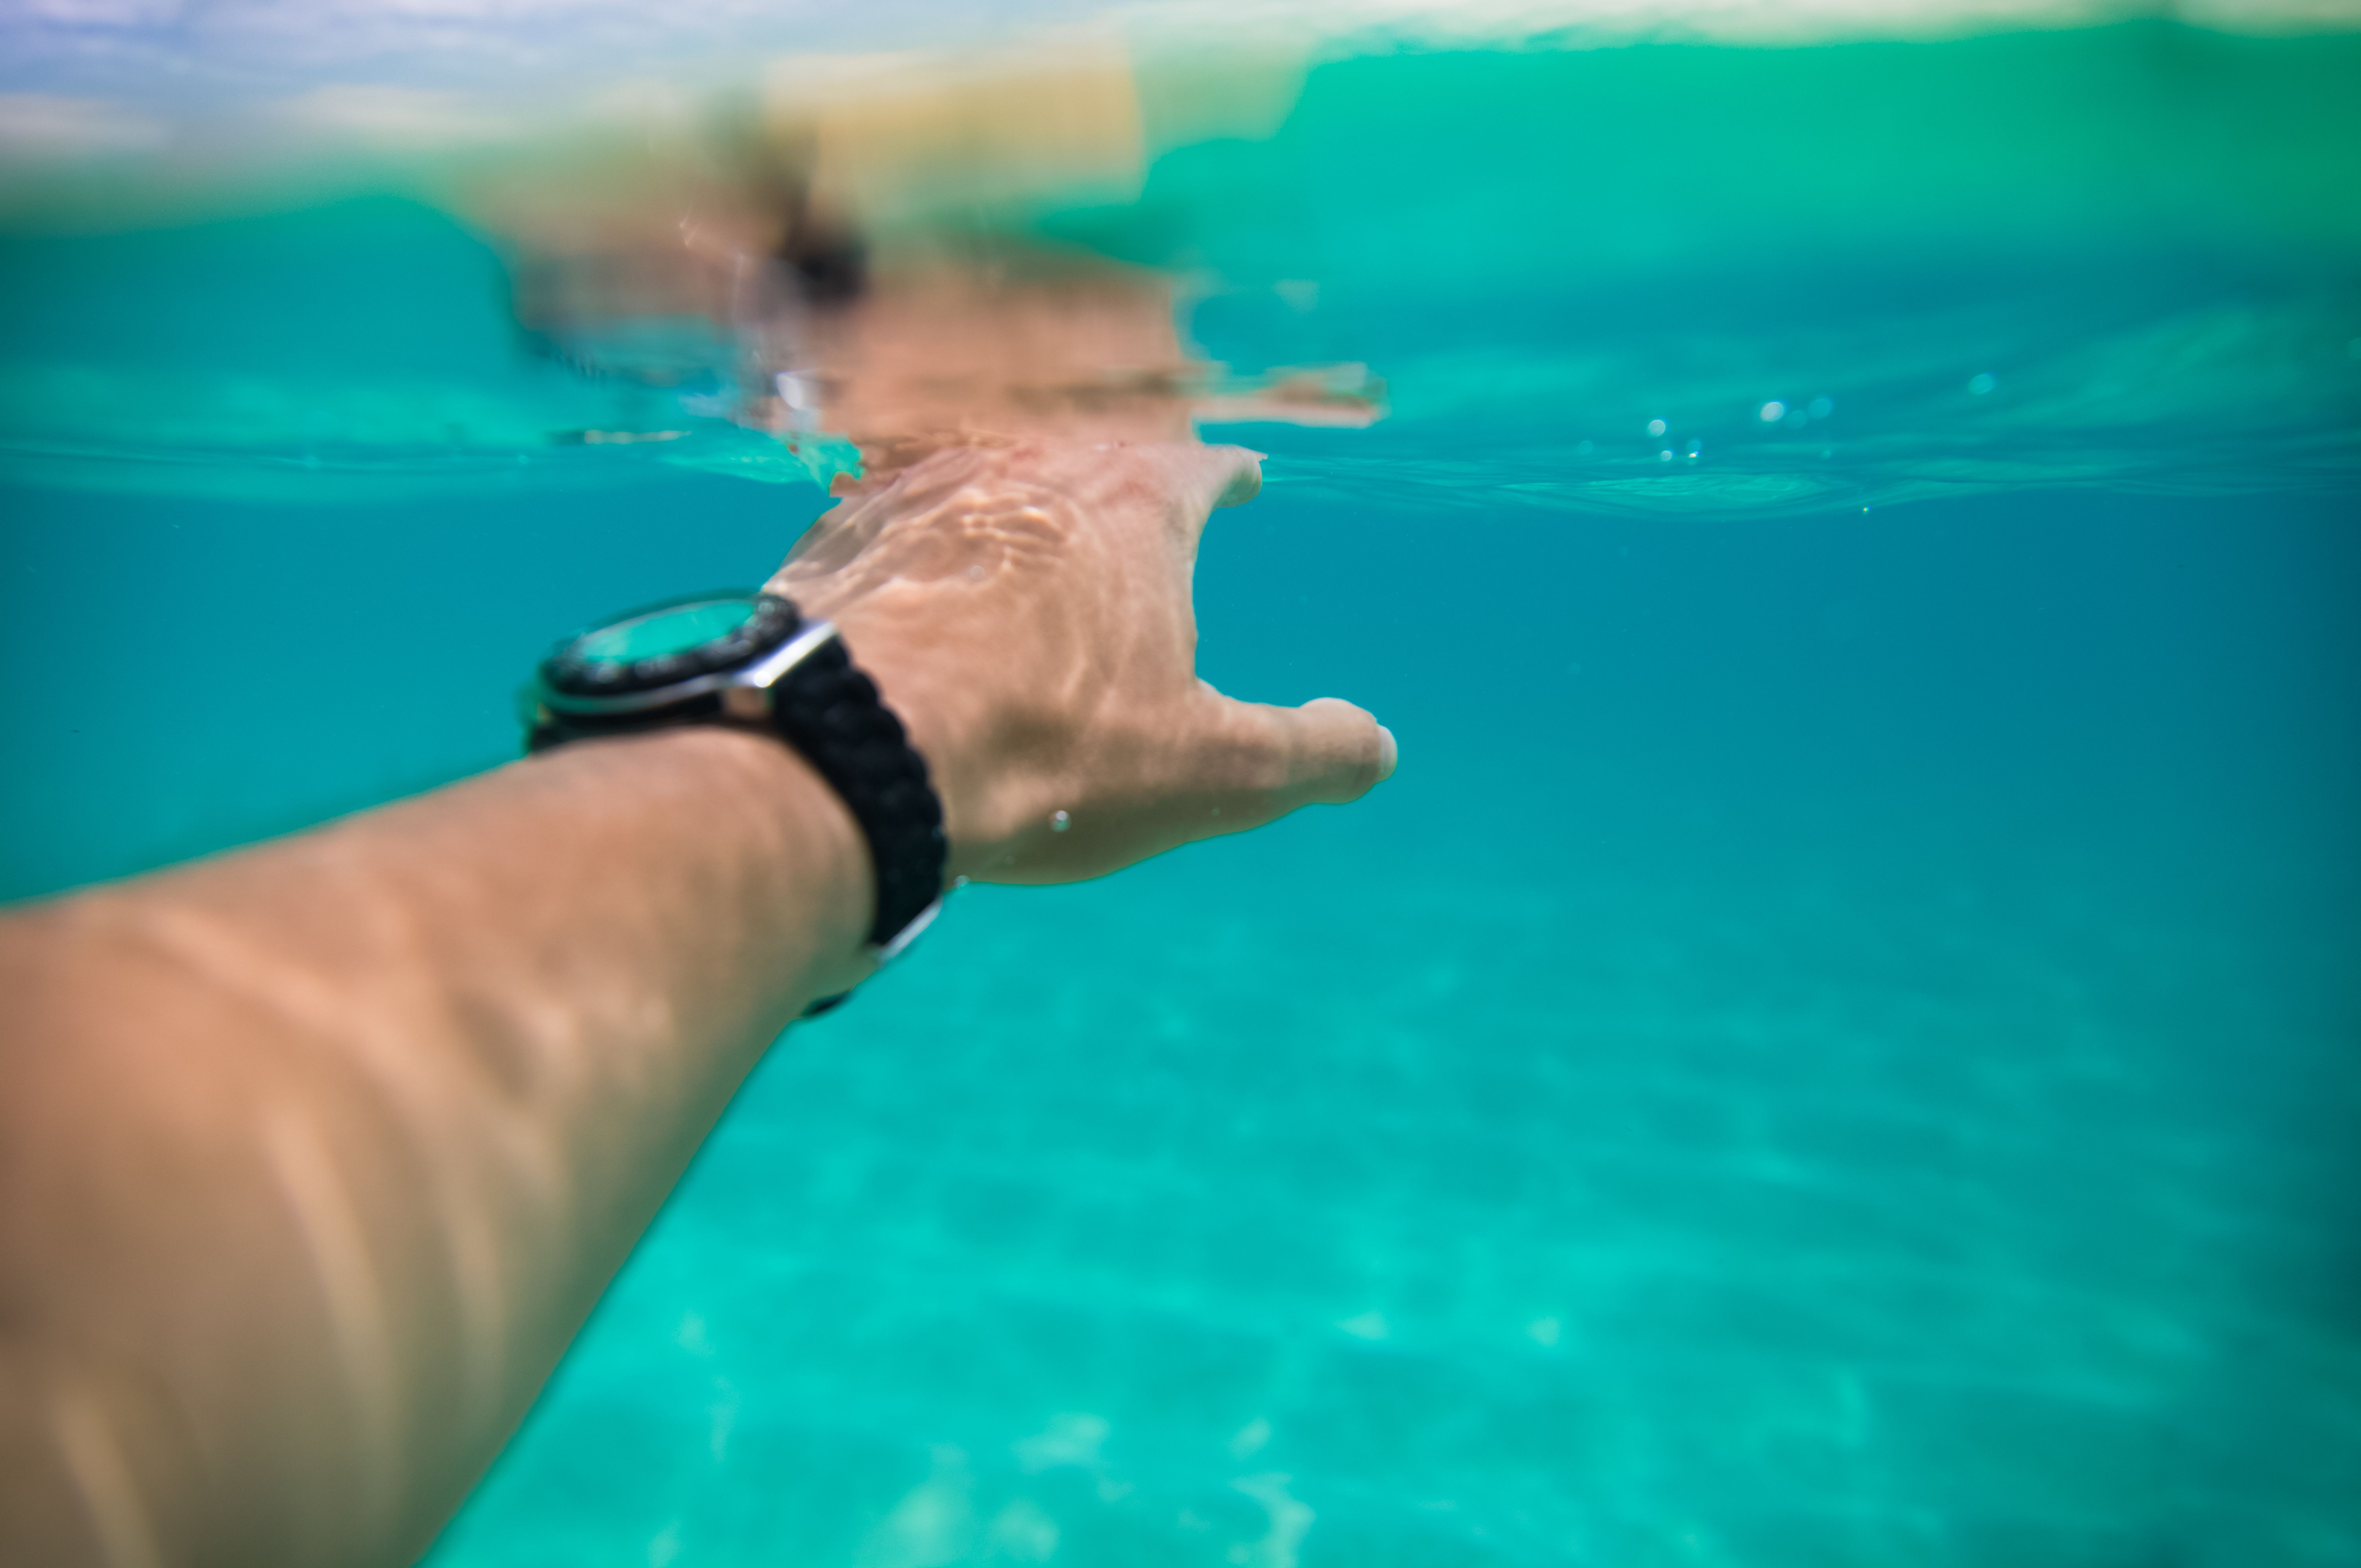 Man swimming under water with smartwatch.